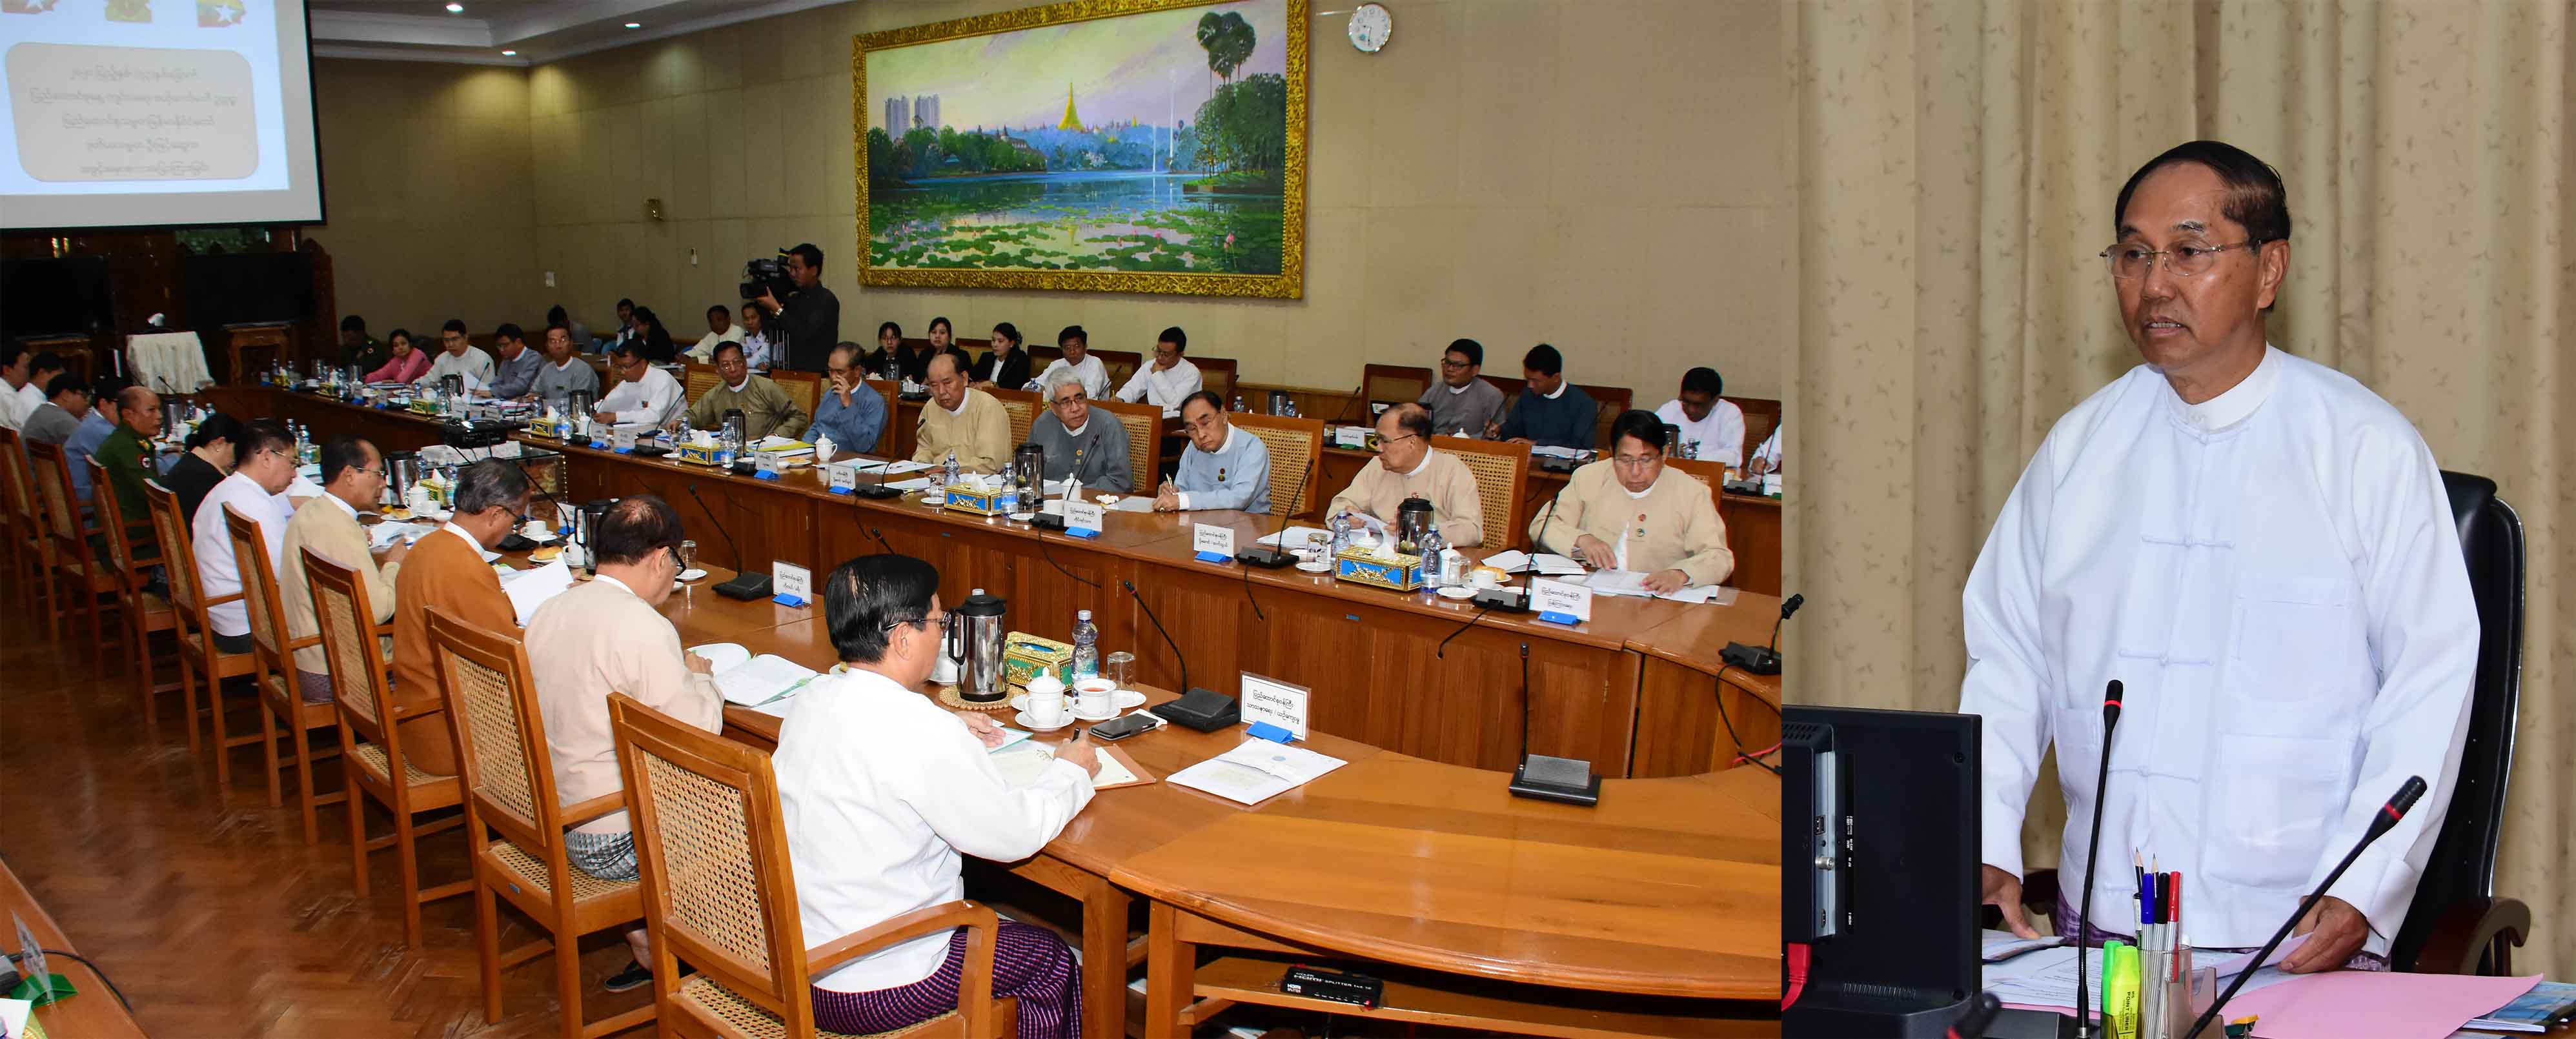 Vice President U Myint Swe delivers the speech at the committee meeting for holding the 73rd Union Day in 2020 in Nay Pyi Taw yesterday. Photo: MNA